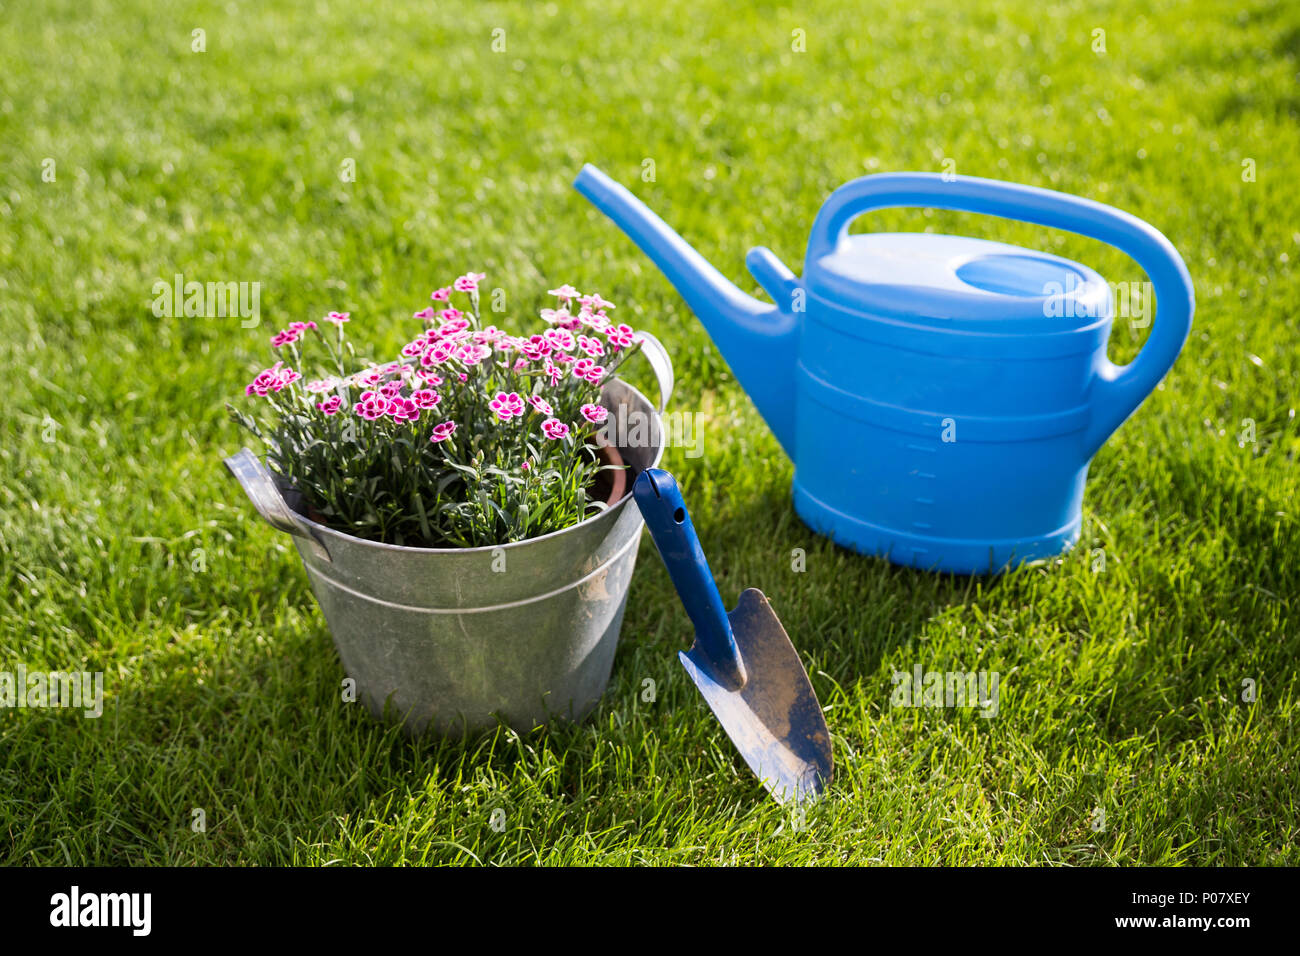 Gardening Tools and Pink Canation Flowers in Tin Bucket standing on Grass. Stock Photo